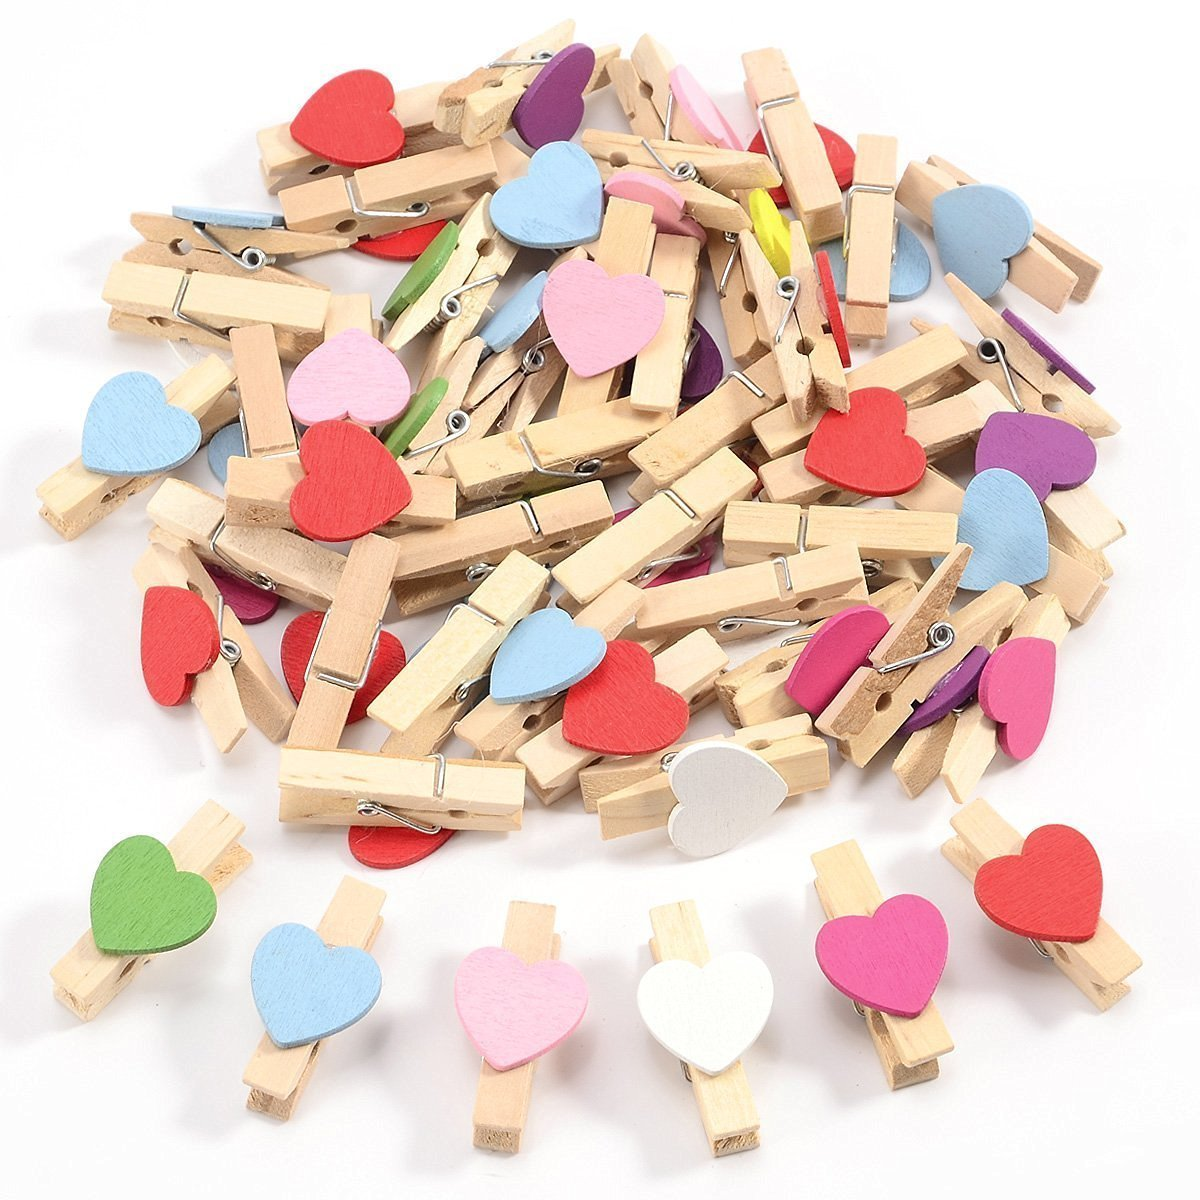 50pcs Mixed Colours Mini Wooden Pegs Decorative Photo Paper Pin Clothespin Craft Clips with 5 Meter Jute Twine RZX